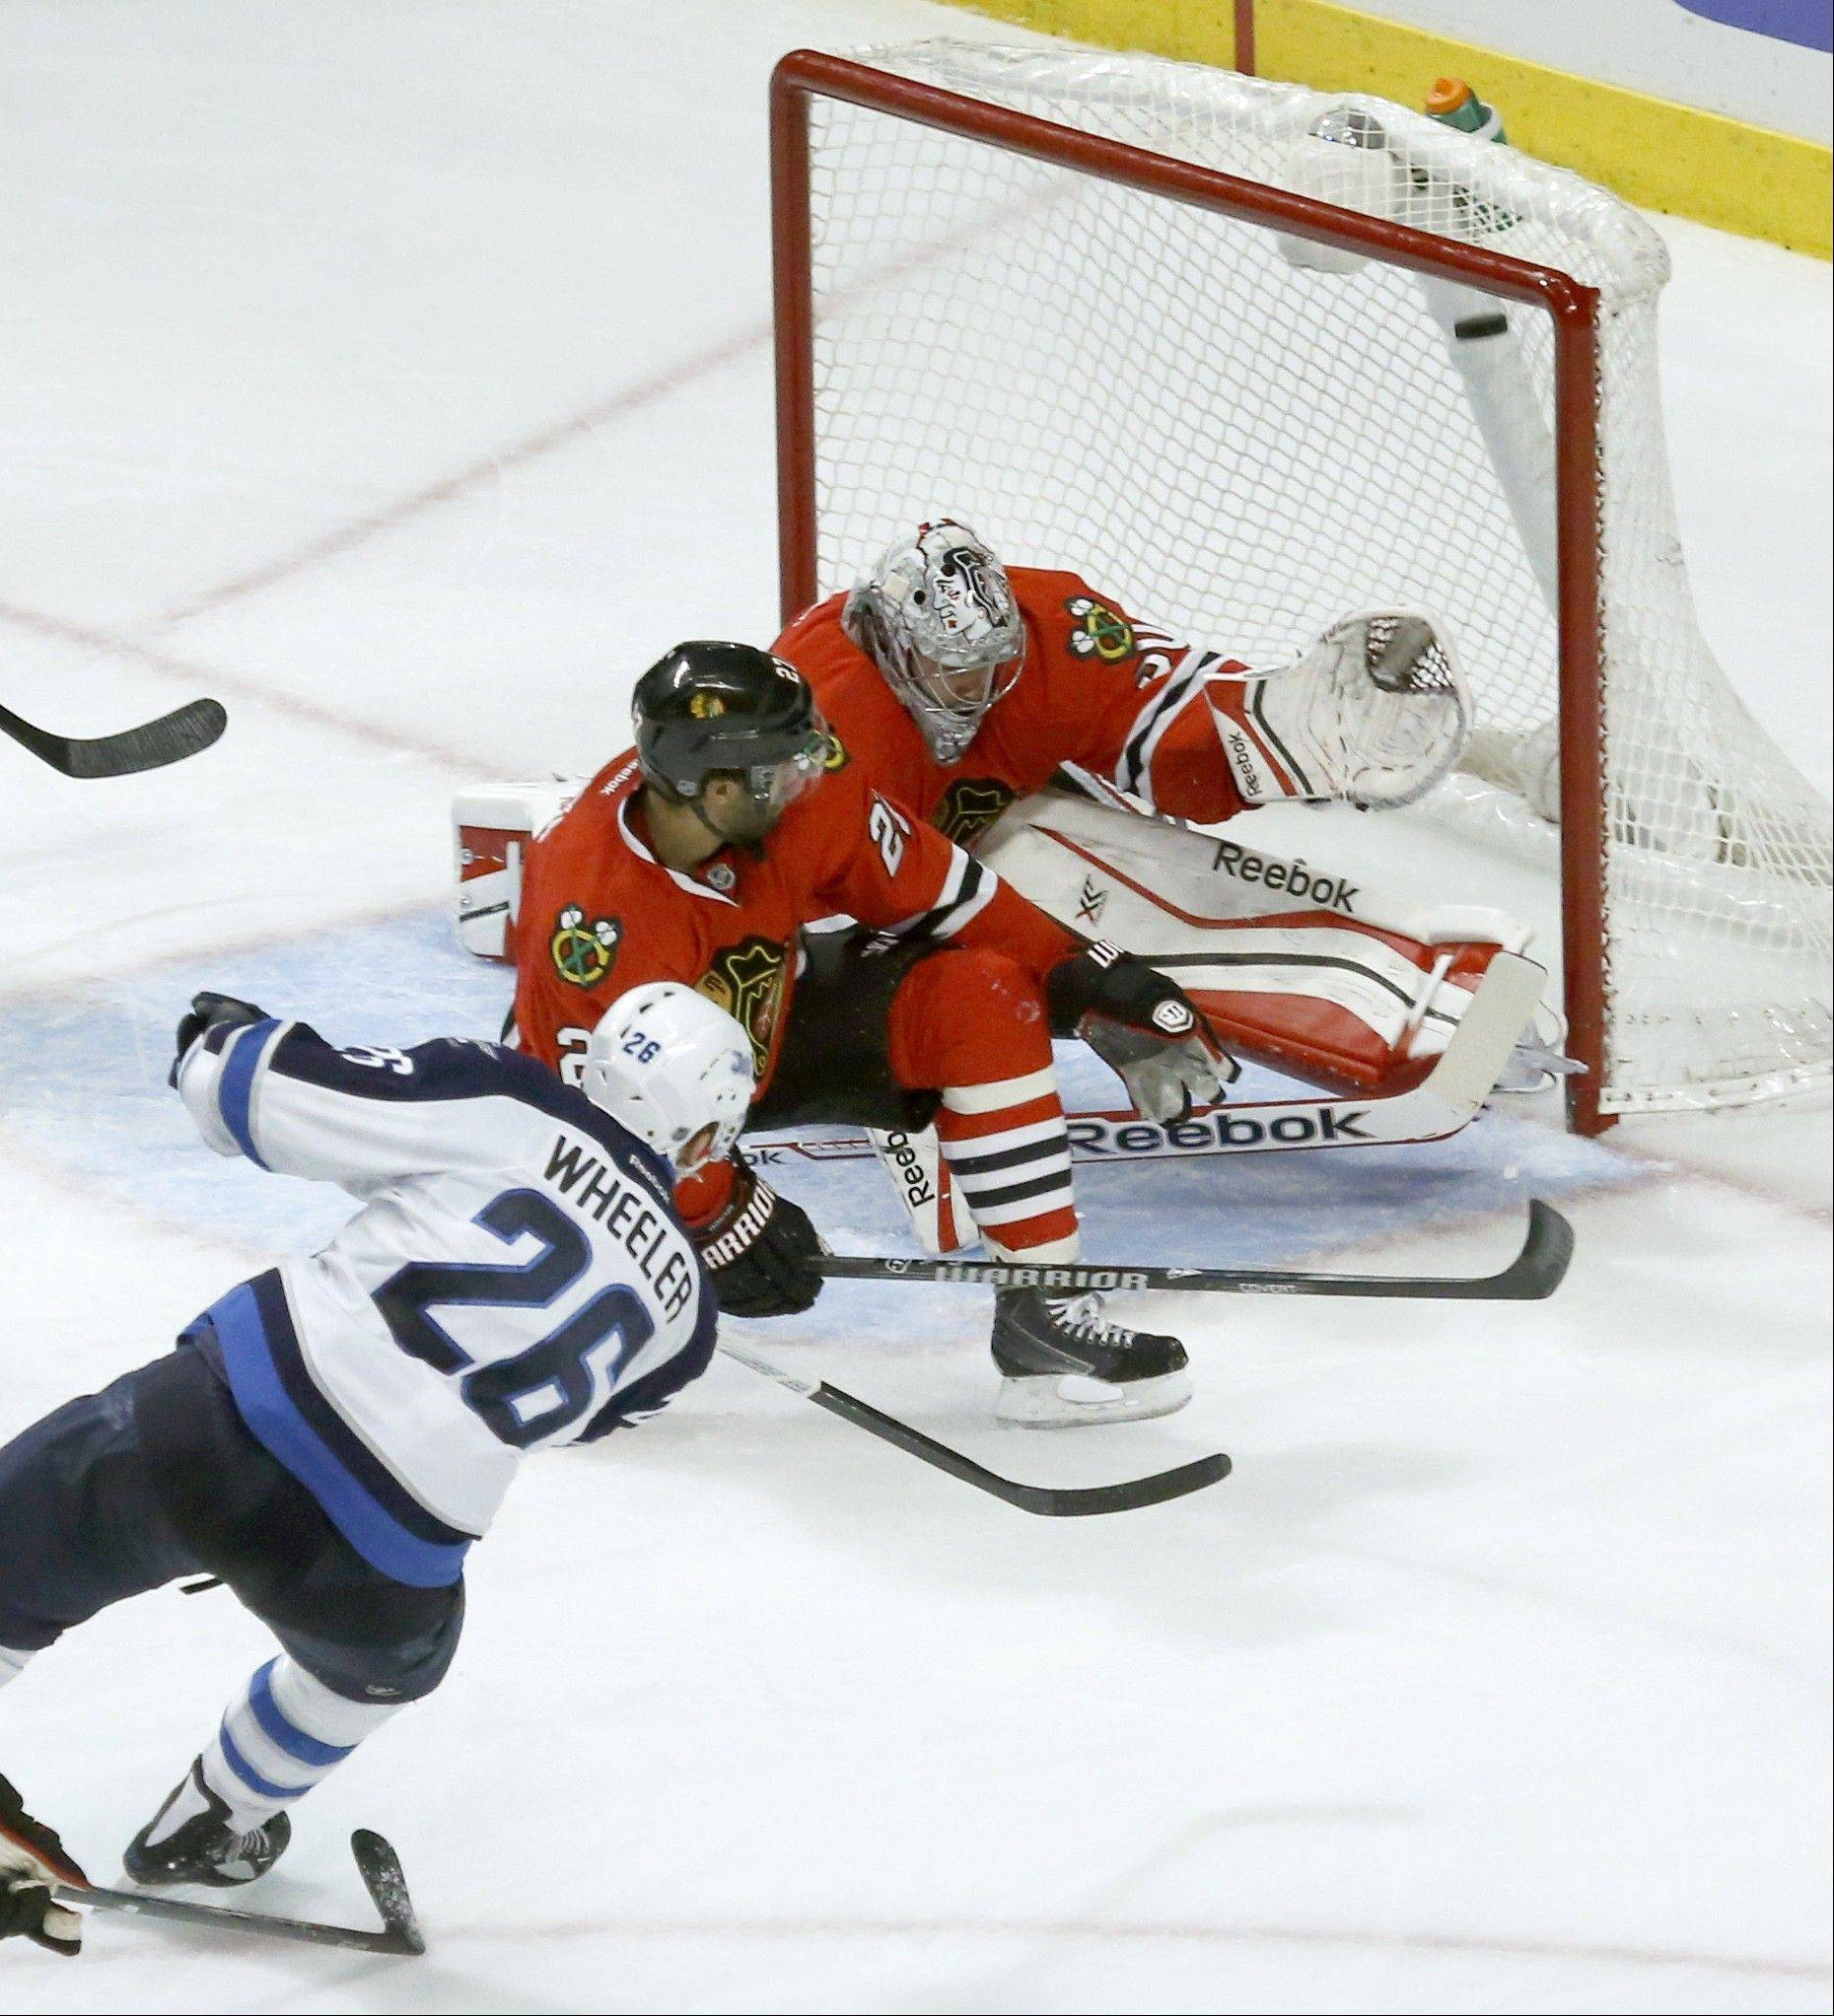 The Jets' Blake Wheeler shoots and scores past Blackhawks defenseman Johnny Oduya and goalie Corey Crawford during Winnipeg's 3-goal third period Sunday night.